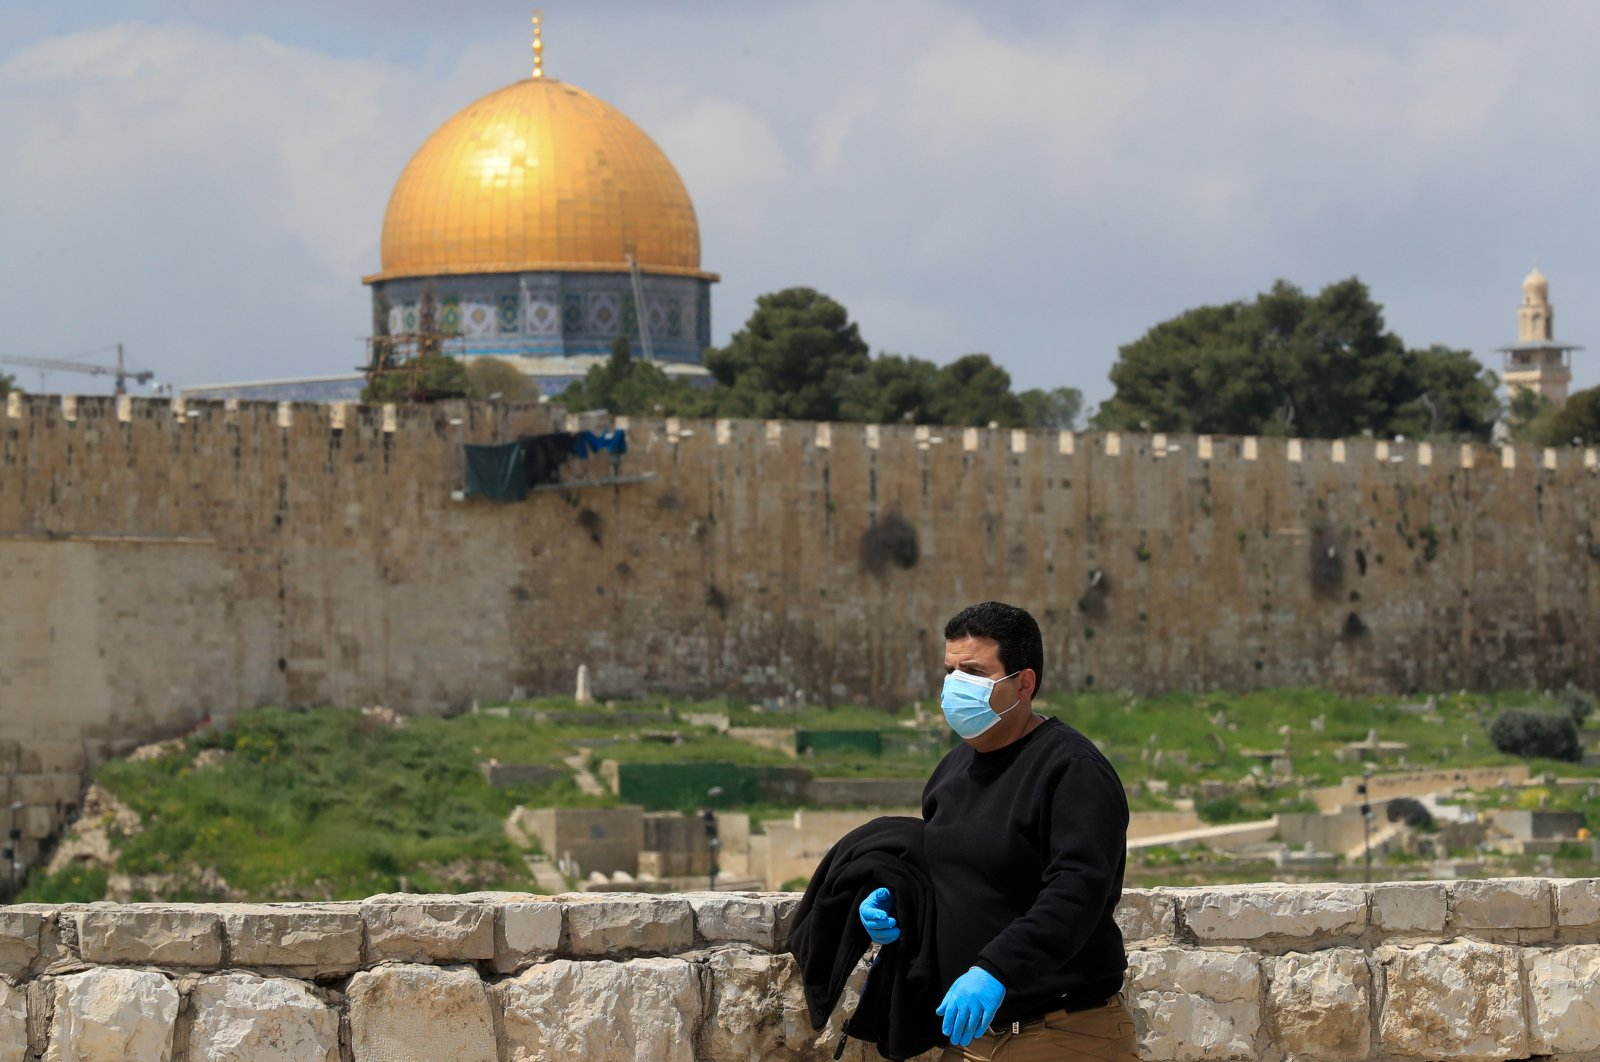 A man wearing a mask and gloves walks past the Dome of the Rock mosqu in Jerusalem's Old City on April 2, 2020. (Photo by Emmanuel DUNAND / AFP)